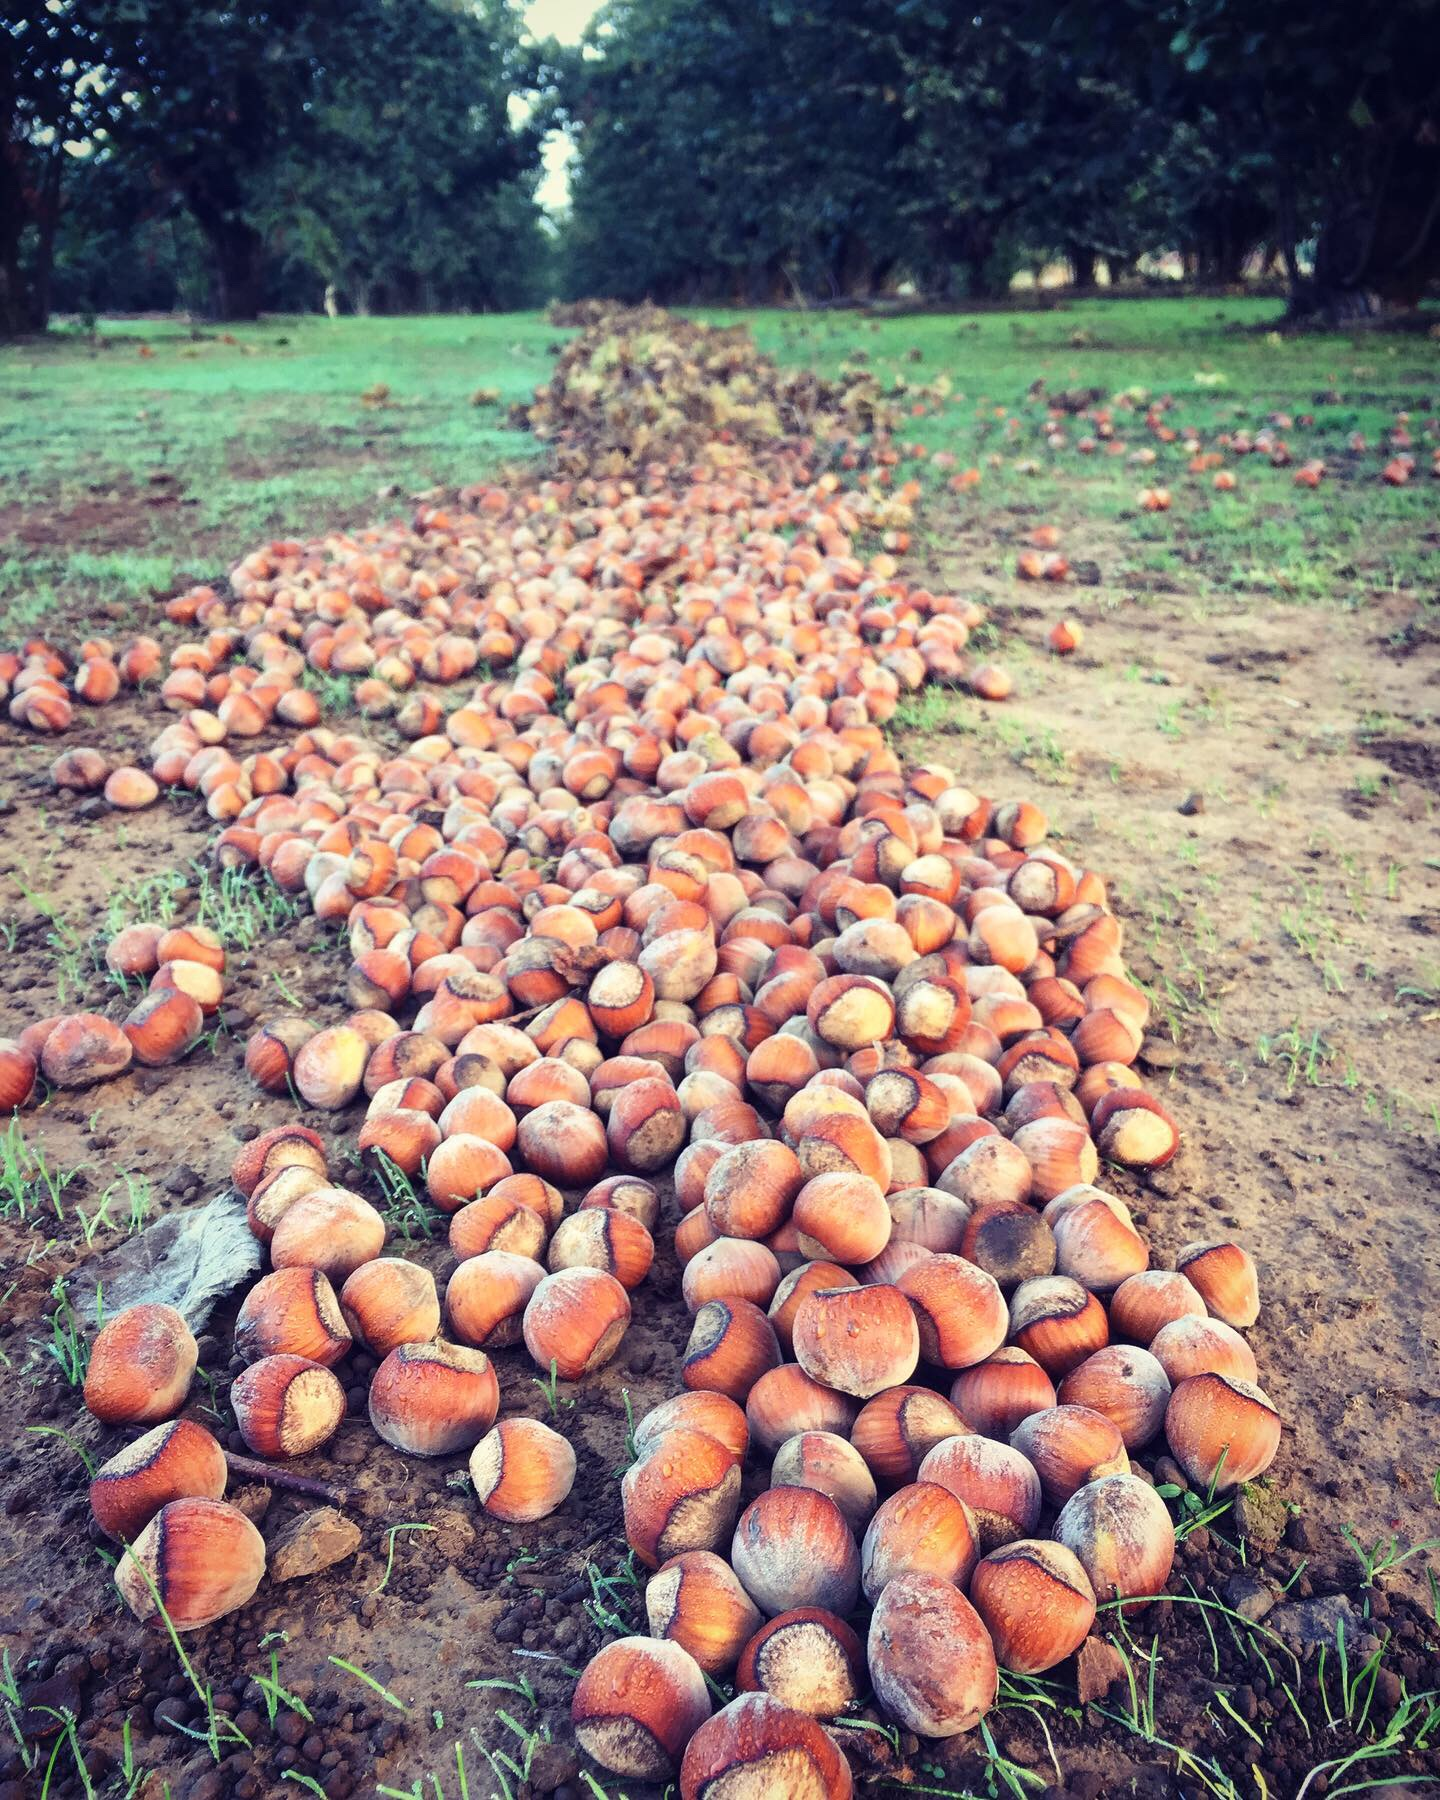 On The Nut Farm